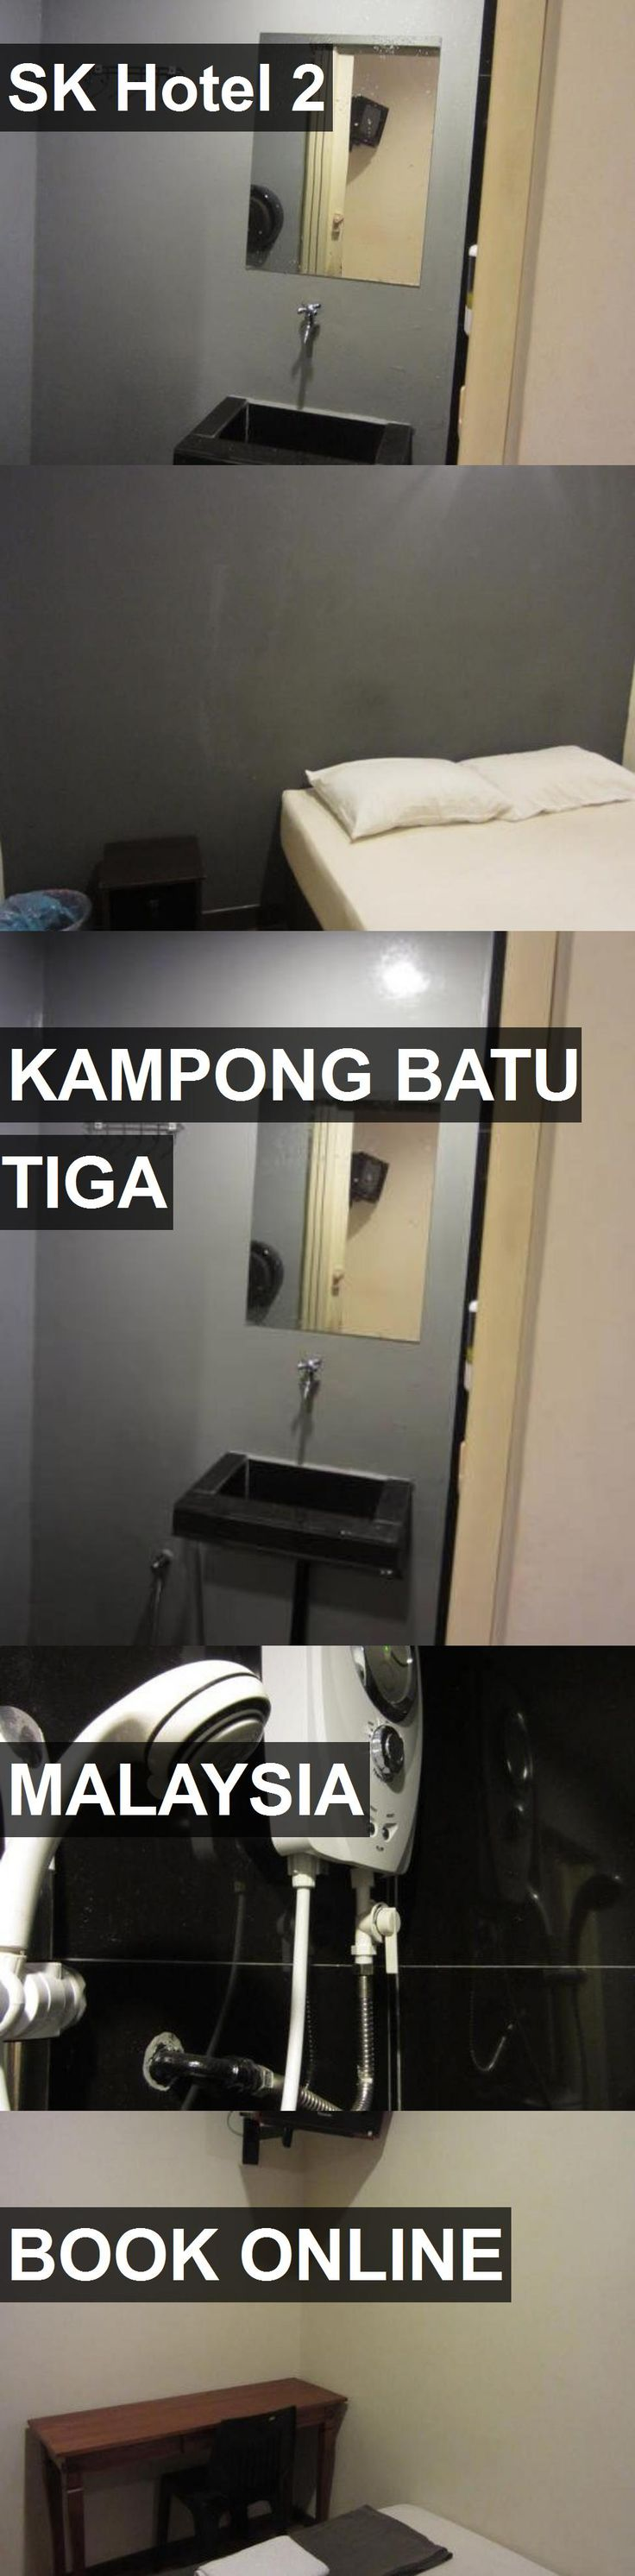 SK Hotel 2 in Kampong Batu Tiga, Malaysia. For more information, photos, reviews and best prices please follow the link. #Malaysia #KampongBatuTiga #travel #vacation #hotel